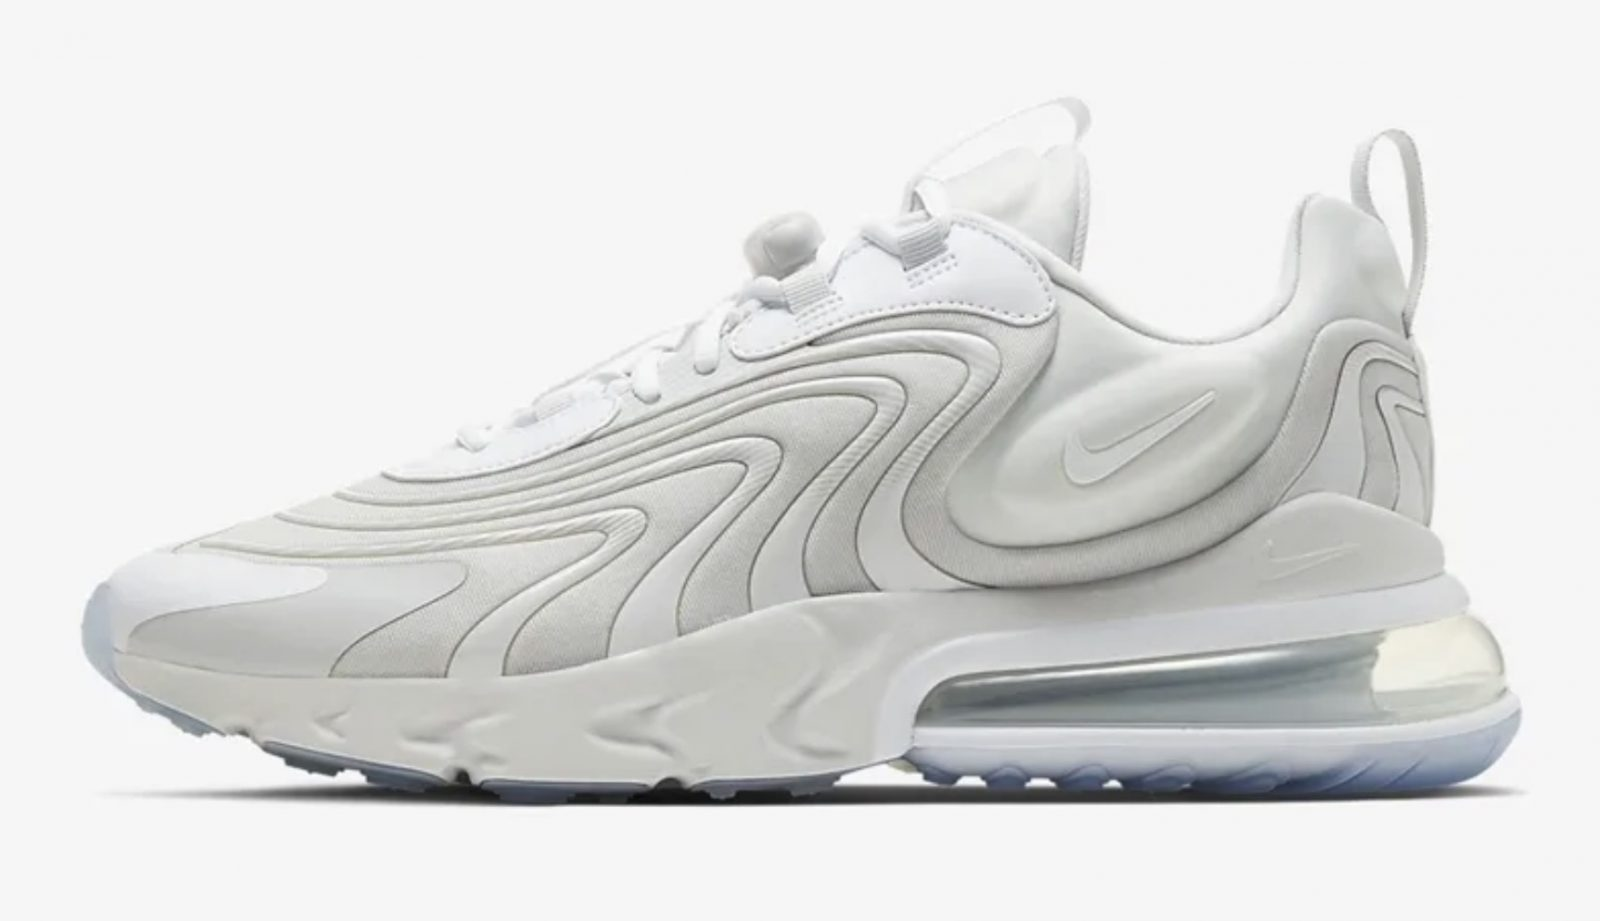 The Nike Air Max 270 React Eng Has Just Surfaced In A Triple White Palette Upcoming Sneaker Releases The Sole Womens